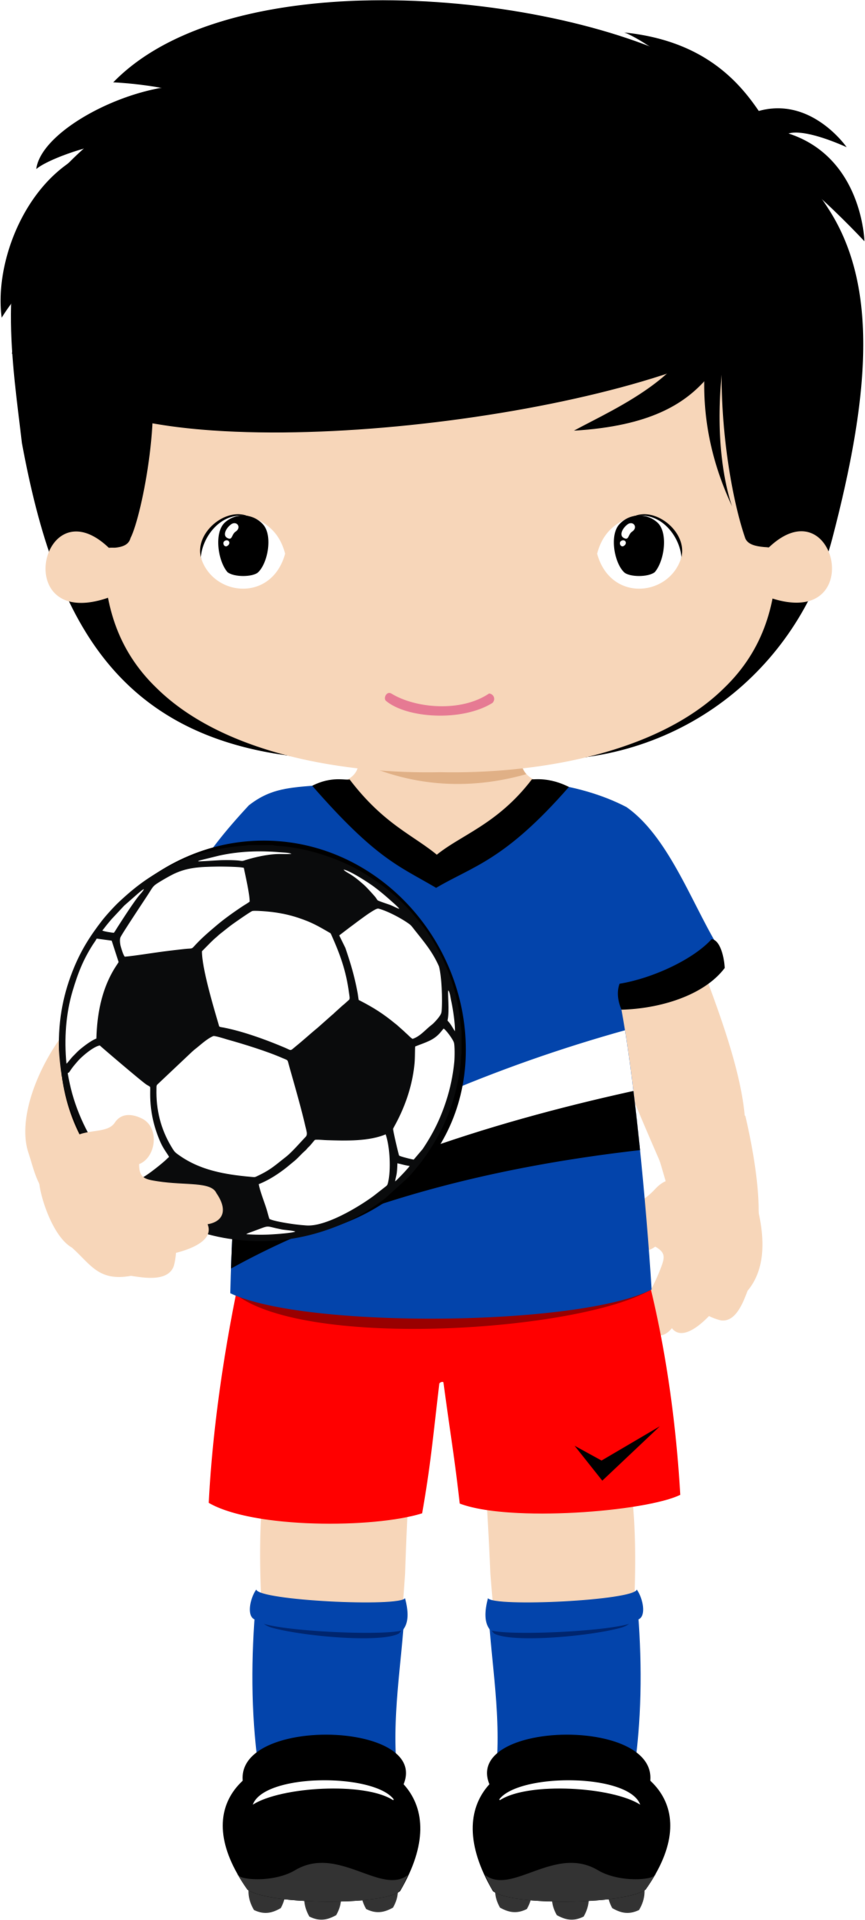 Sports Ginastica Cute Cartoon Pictures Kids Clipart Football Themes